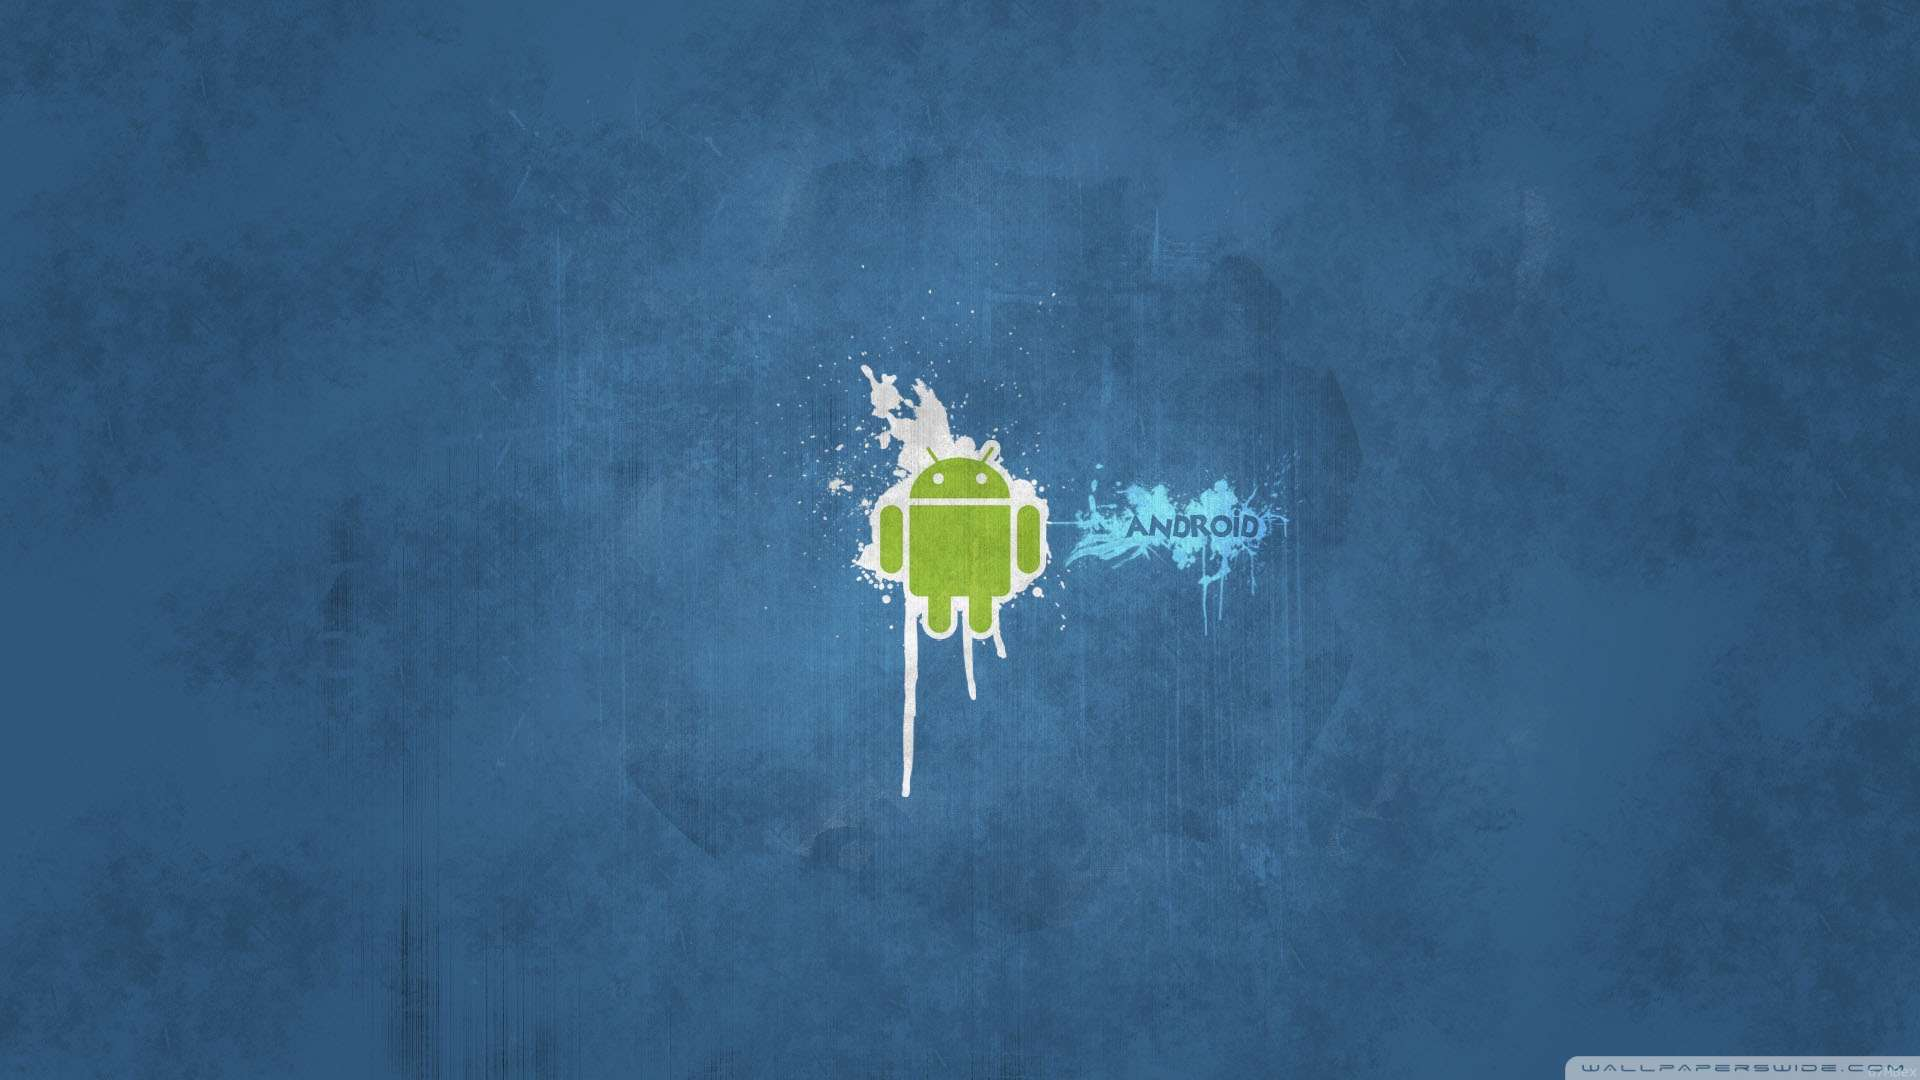 android 51 wallpapers wallpapersafari